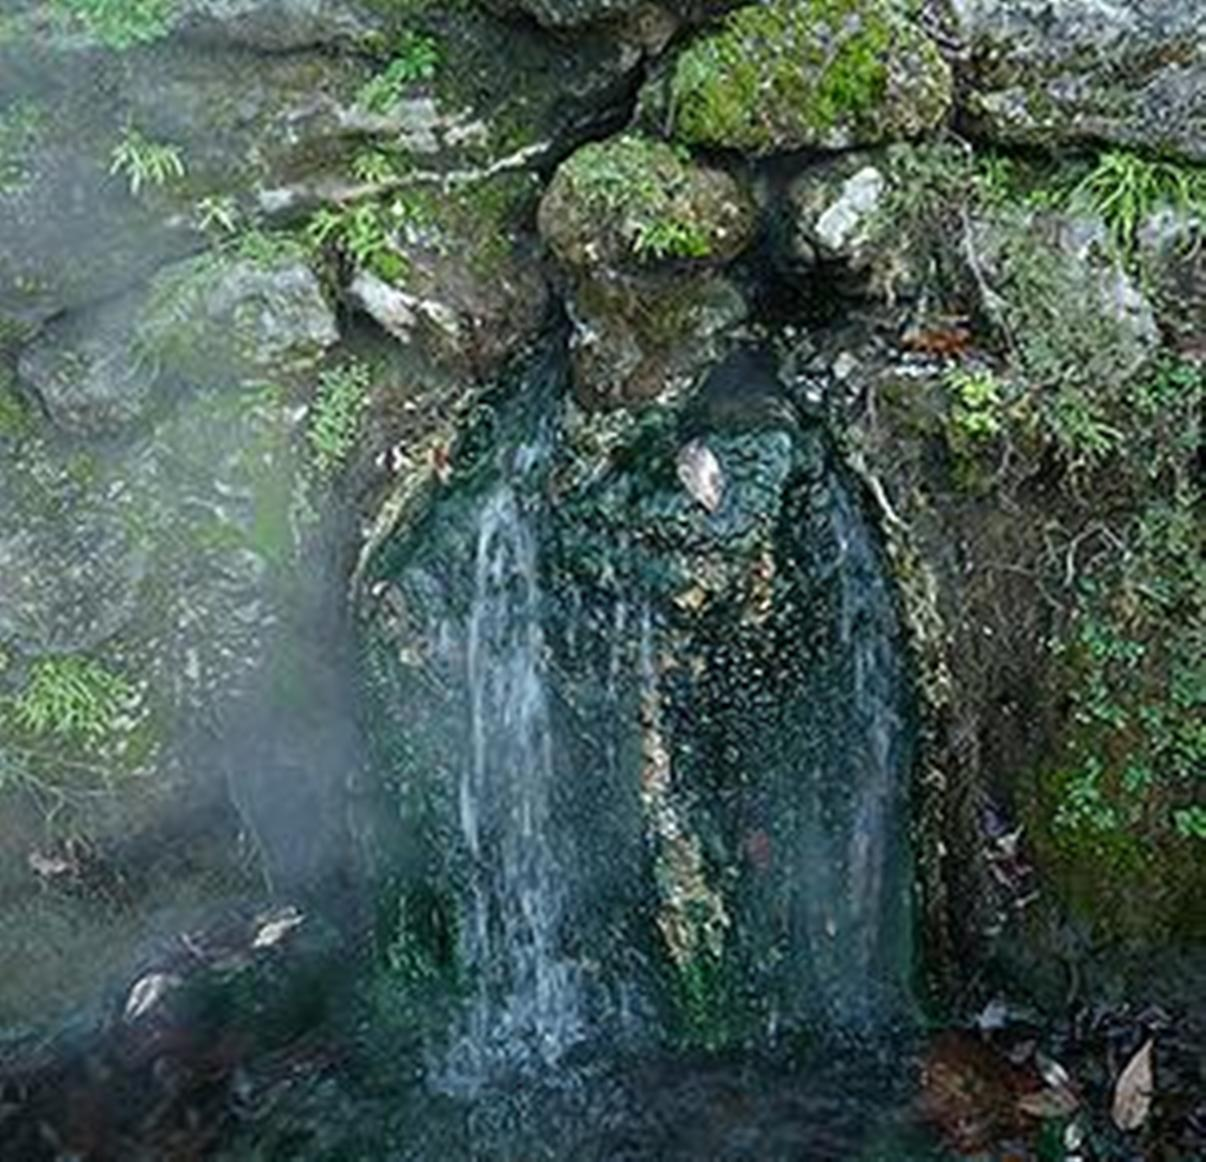 hot springs national park single girls Married but looking for affairs in hot springs national park, arkansas if you are looking to meet married women or men in hot springs national park.